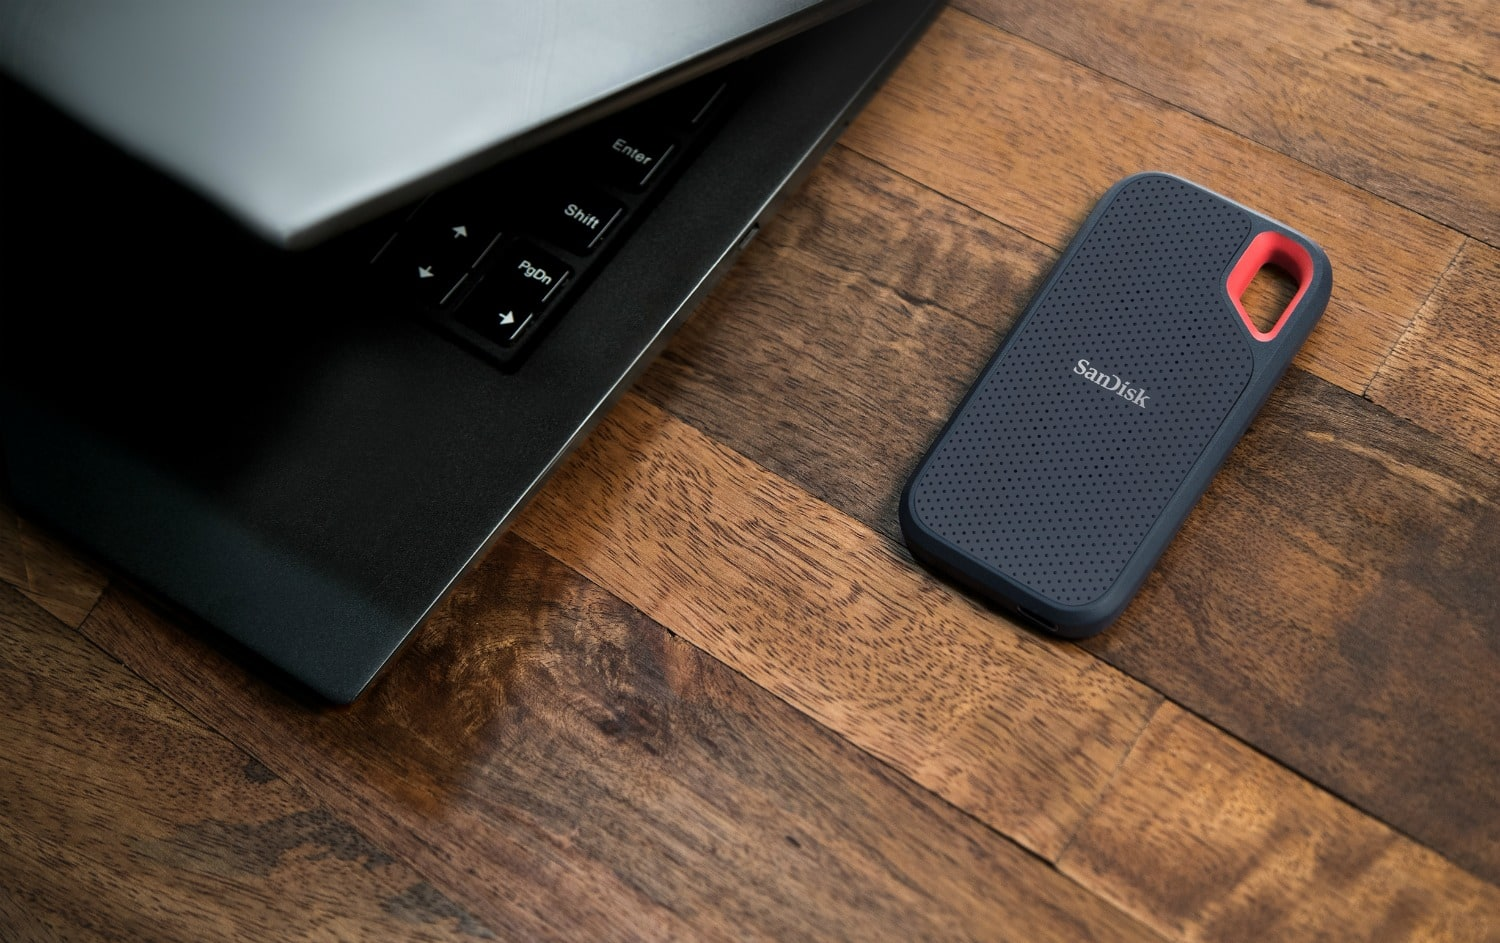 SanDisk Large portable memory drive